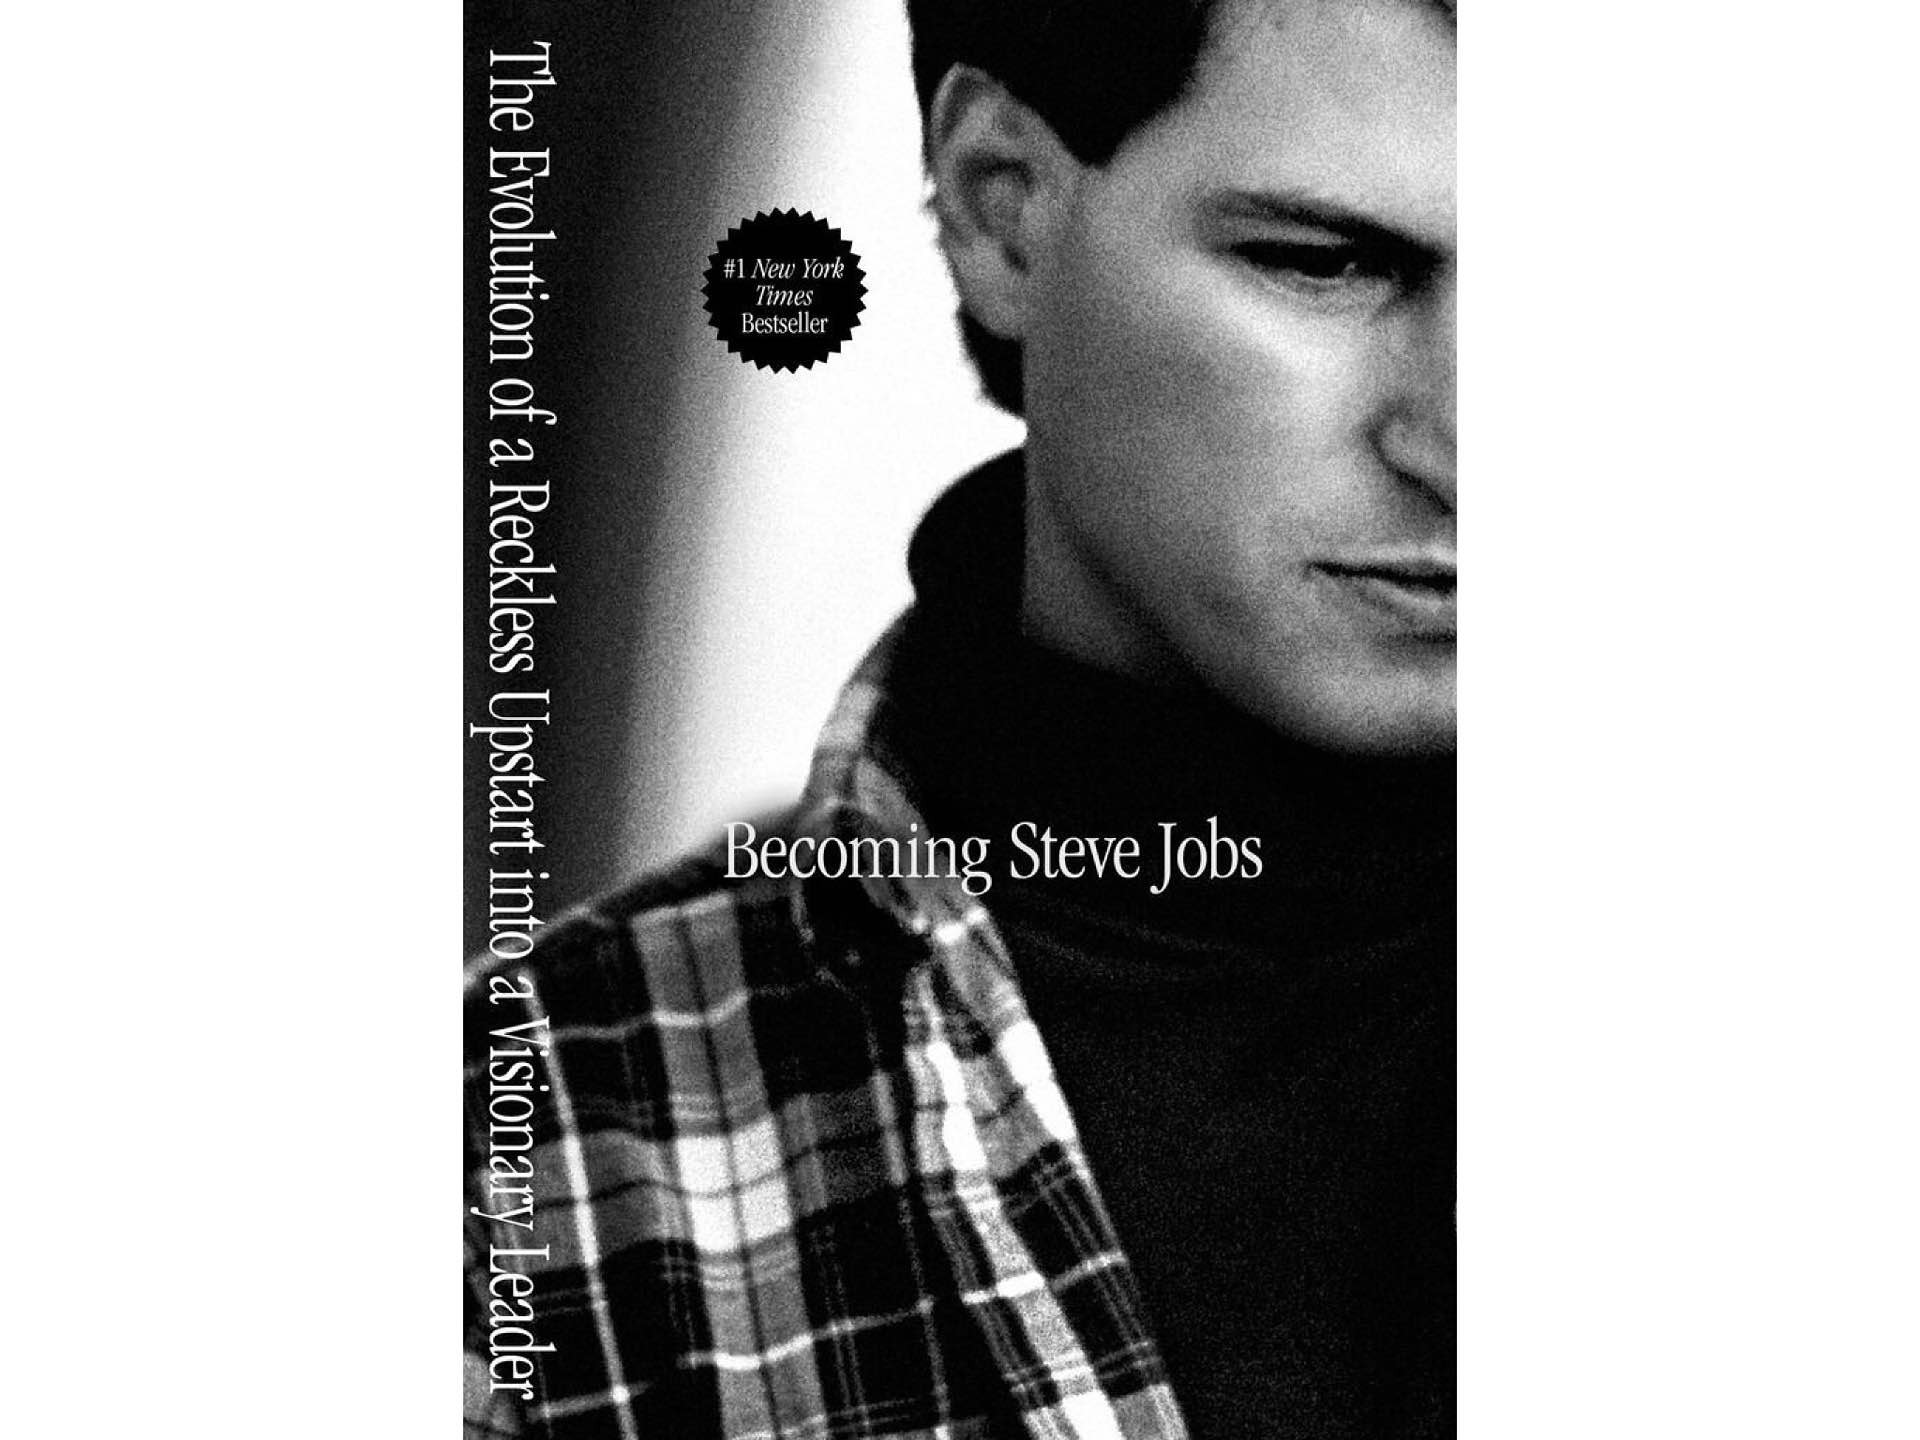 Becoming Steve Jobs: The Evolution of a Reckless Upstart into a Visionary Leader by Brent Schlender and Rick Tetzeli.